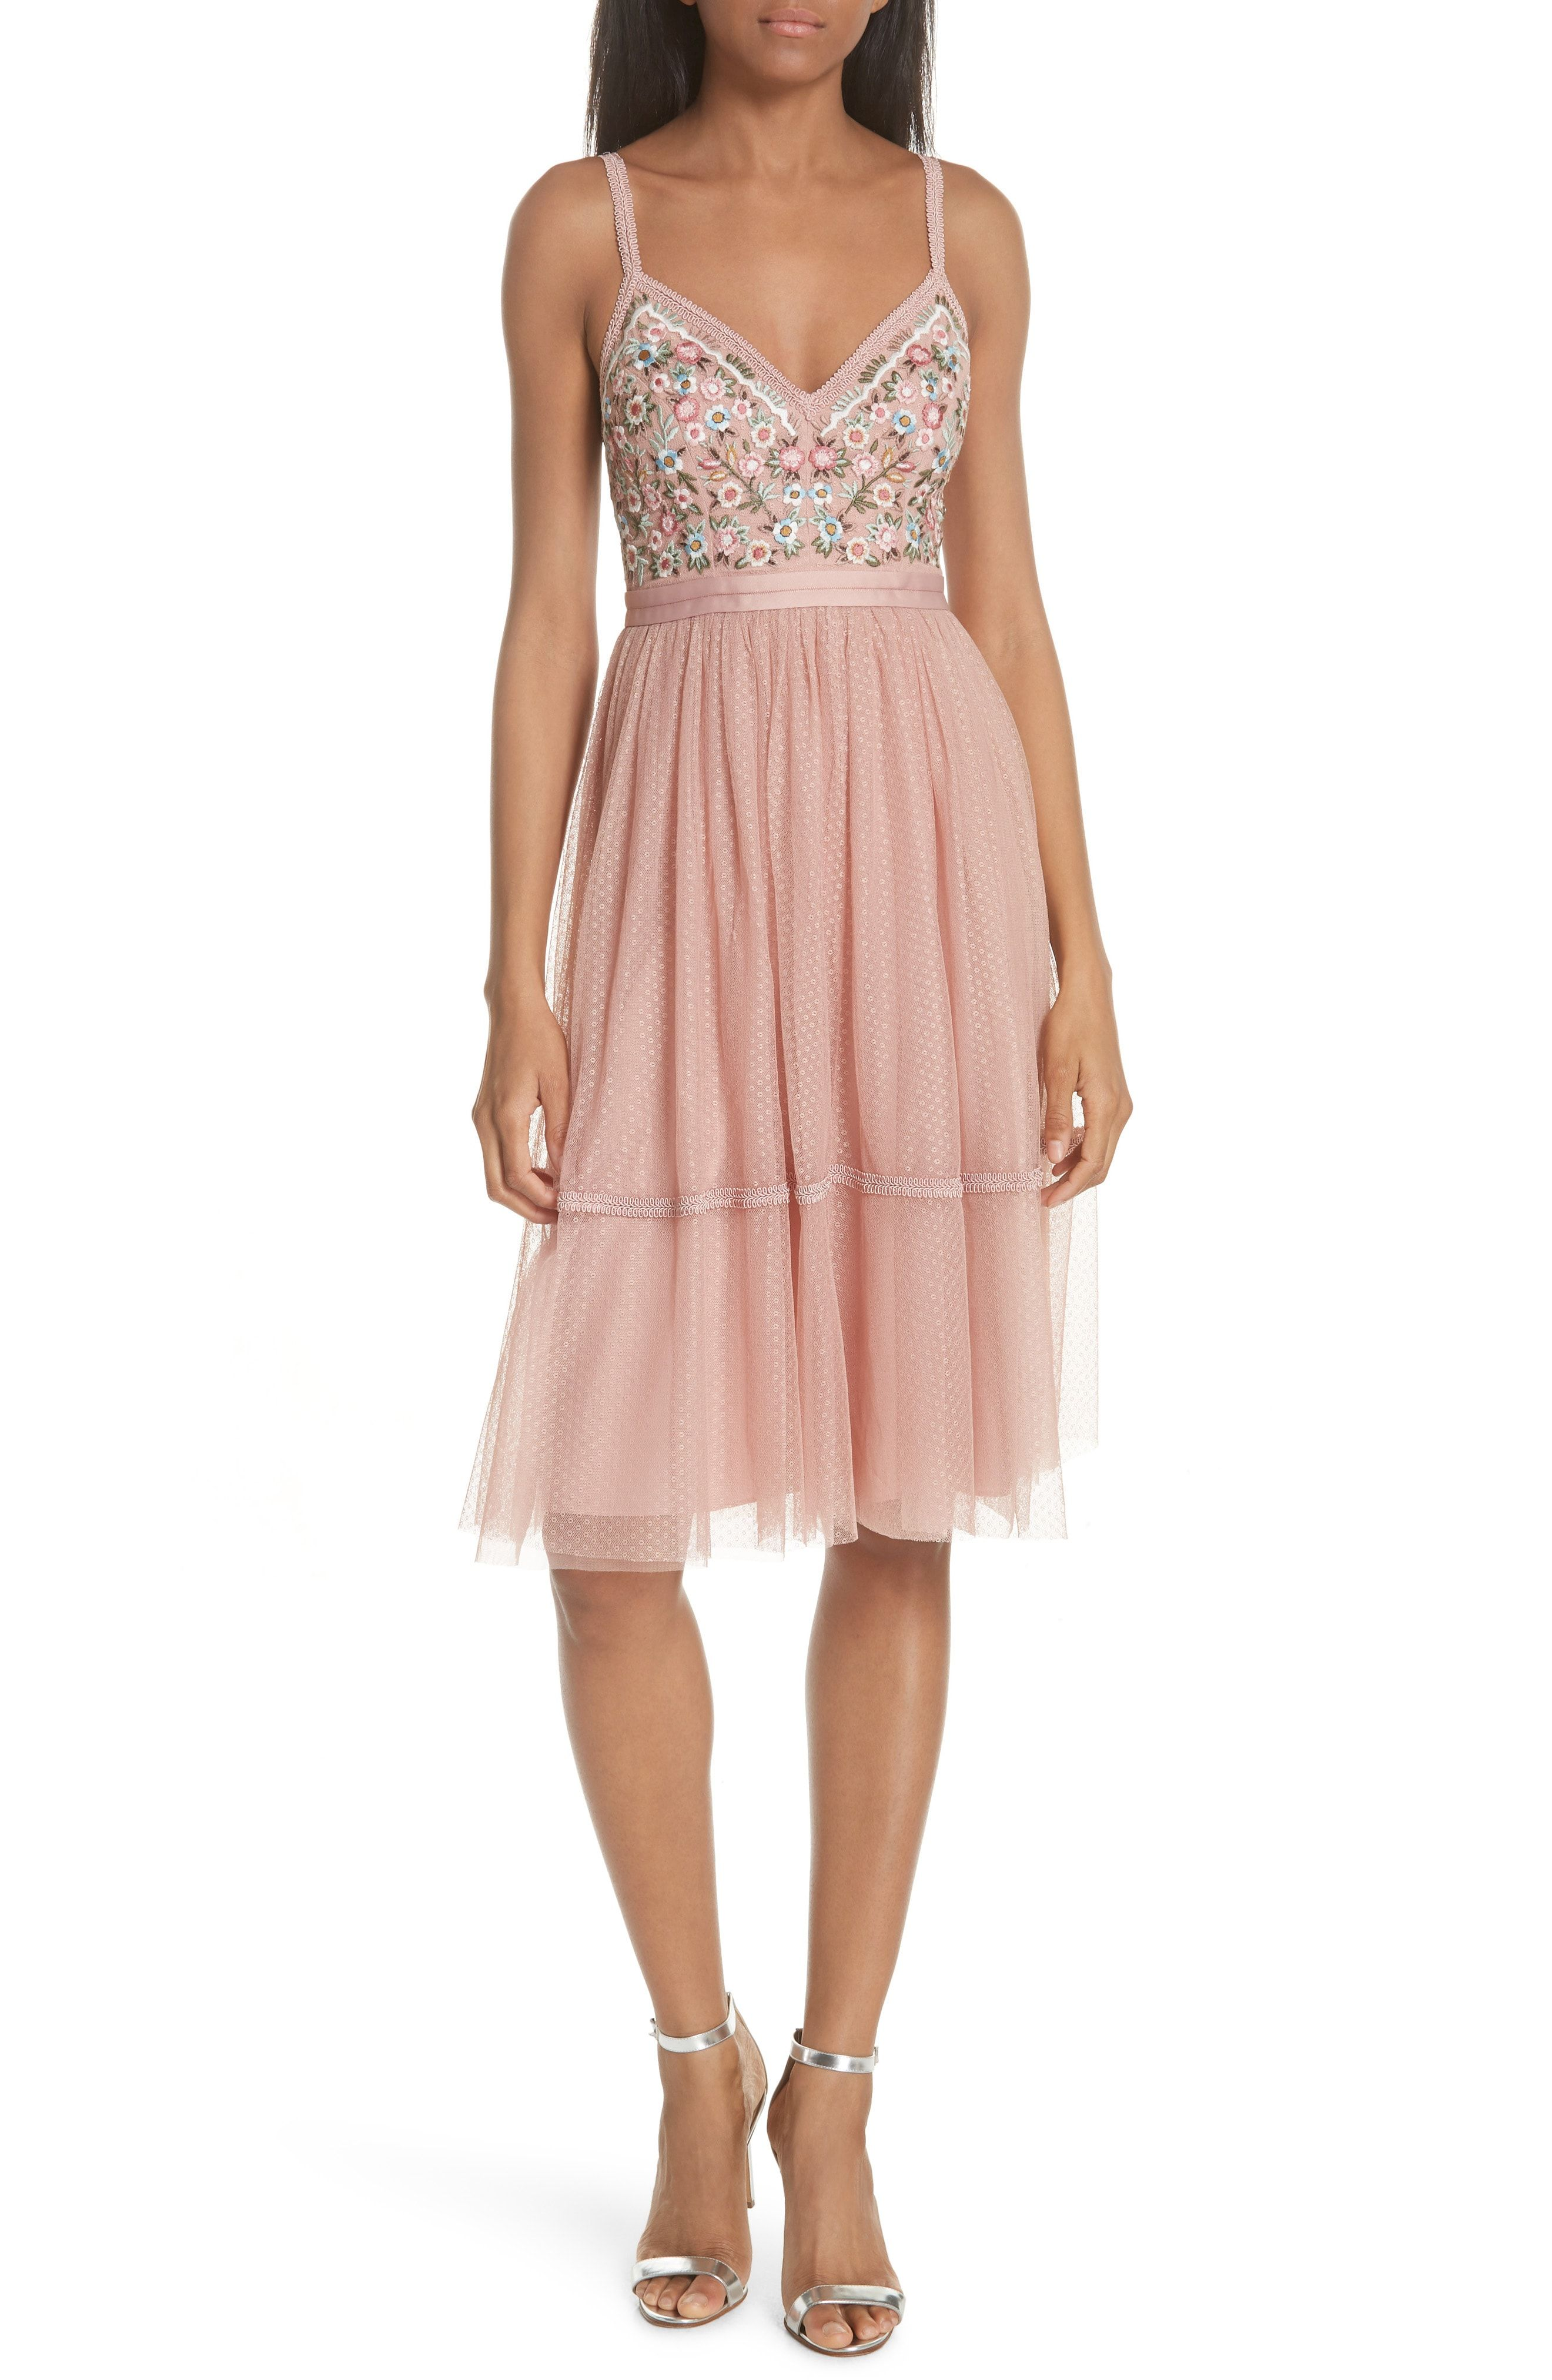 4140a3d8a8ca Buy Needle amp  Thread Embroidered Fit amp  Flare Dress online. Sku  oetr33631vvtk62496